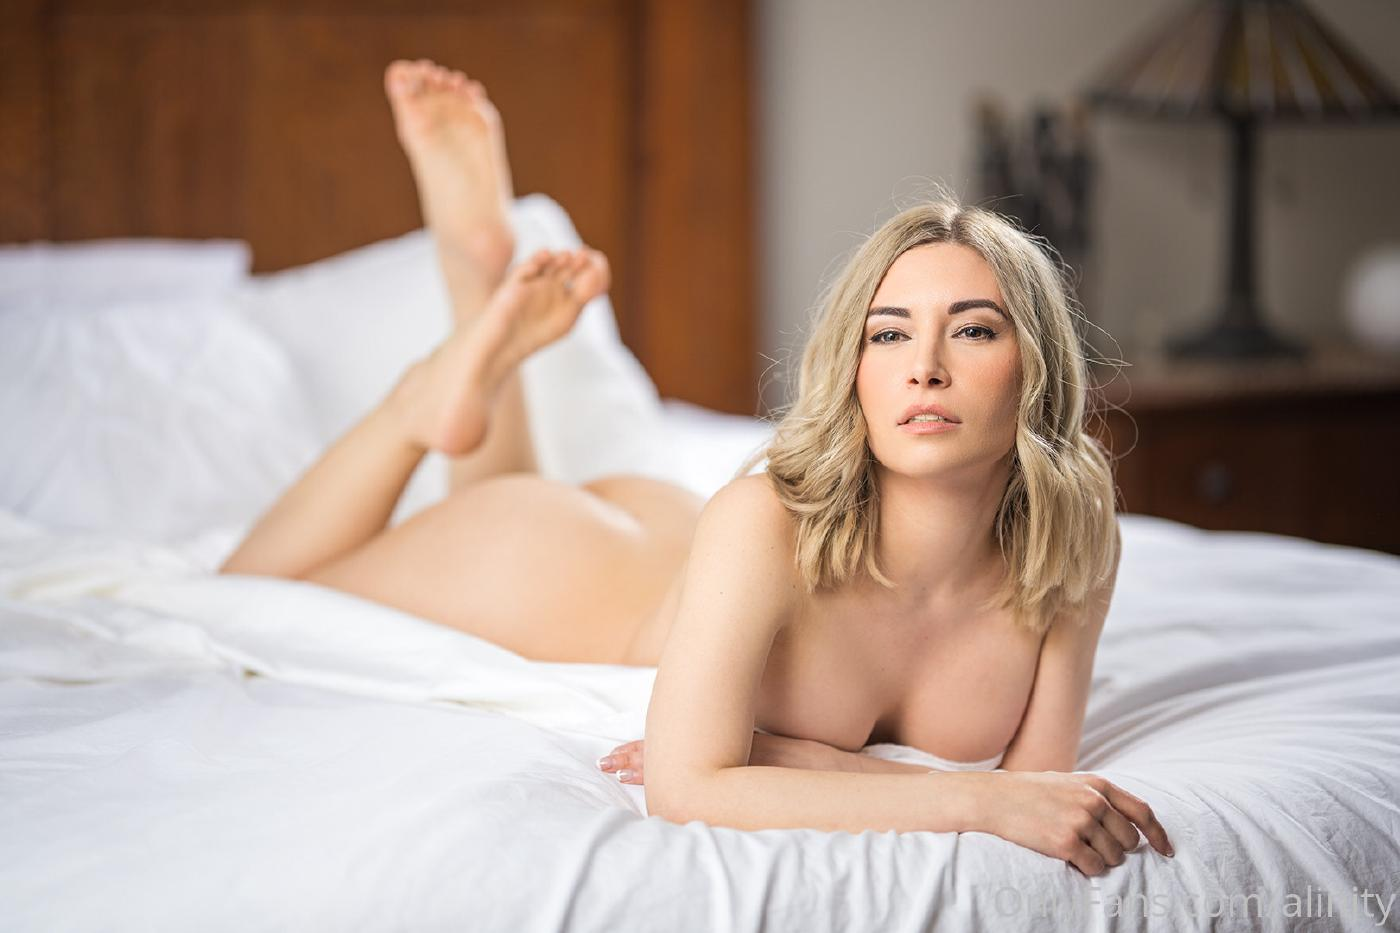 Alinity Nude Pussy Onlyfans Content Leaked 0011